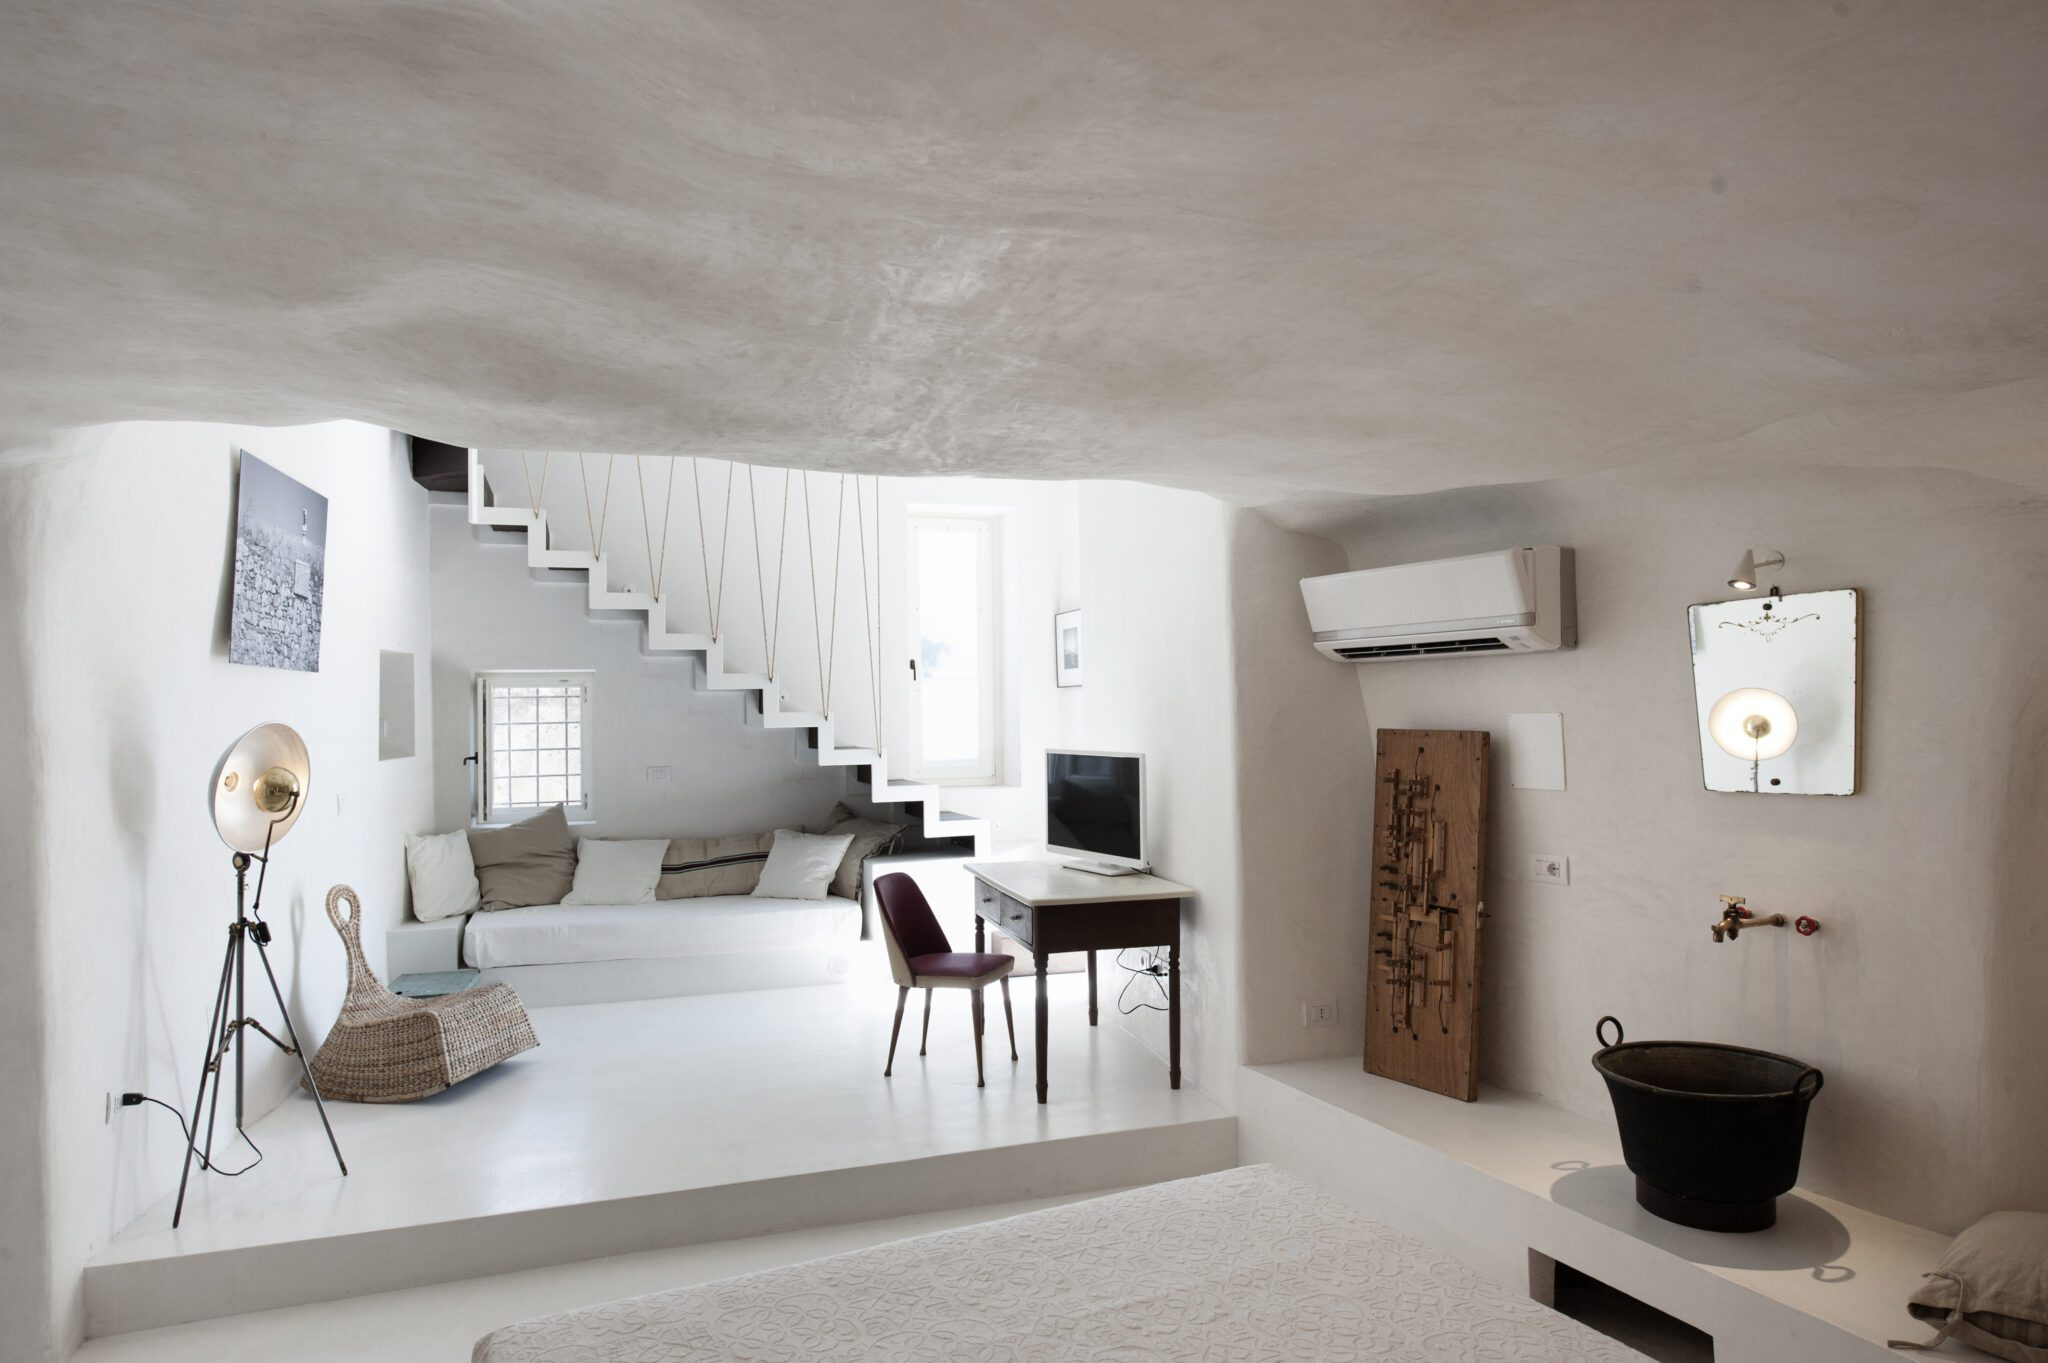 Nest Italy - Boutique Hotel Slow in Modica